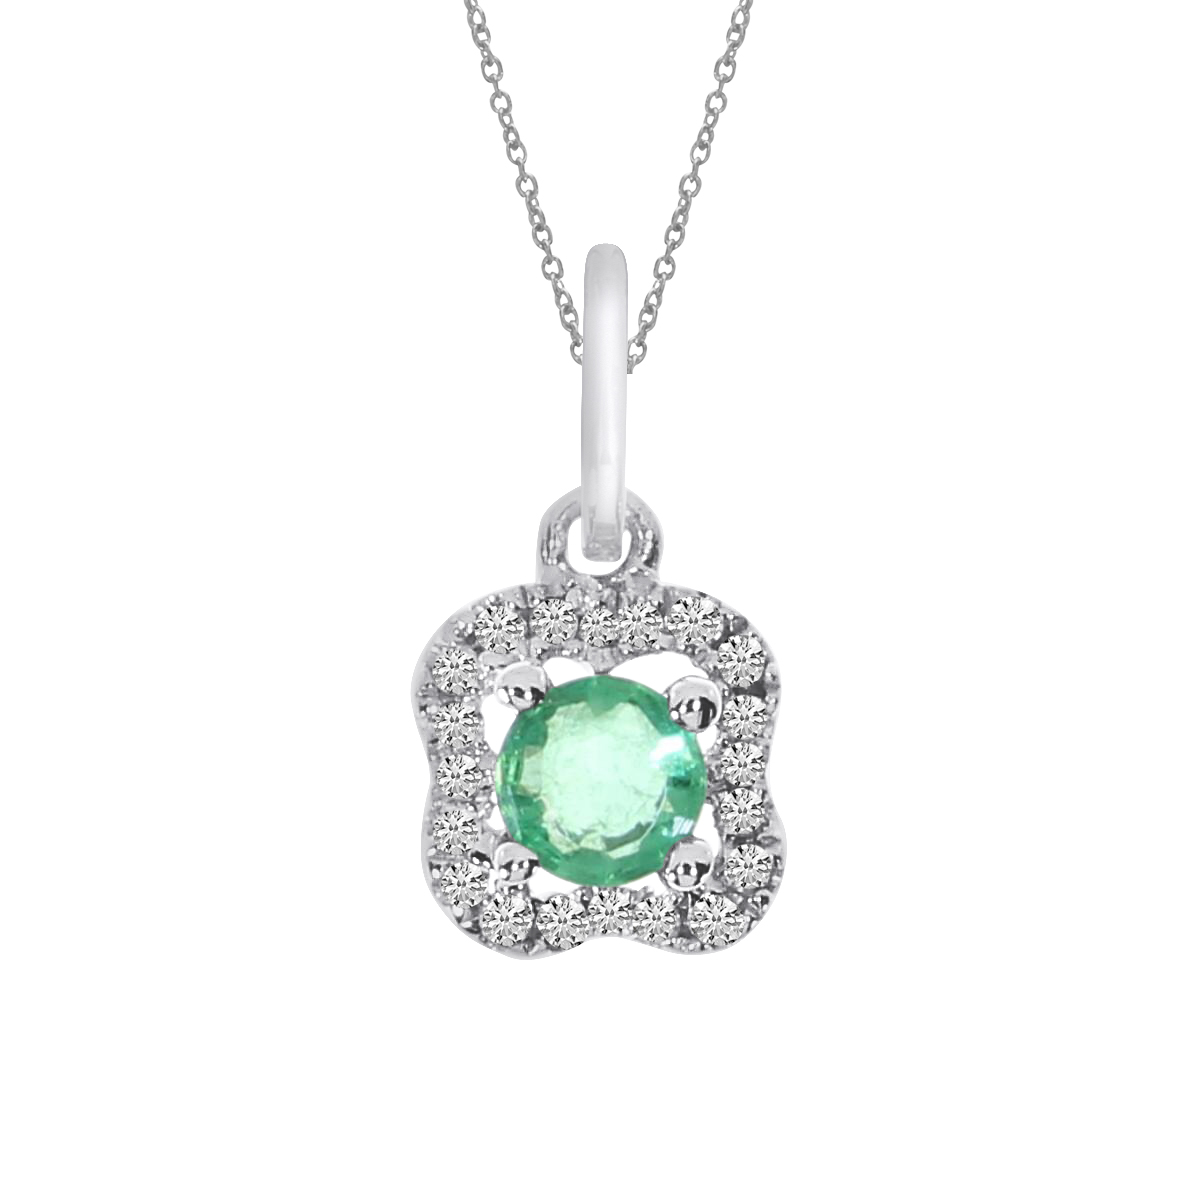 A charming pendant in 14k white gold with a beautiful 3.5 mm round emerald and .05 ct diamonds.